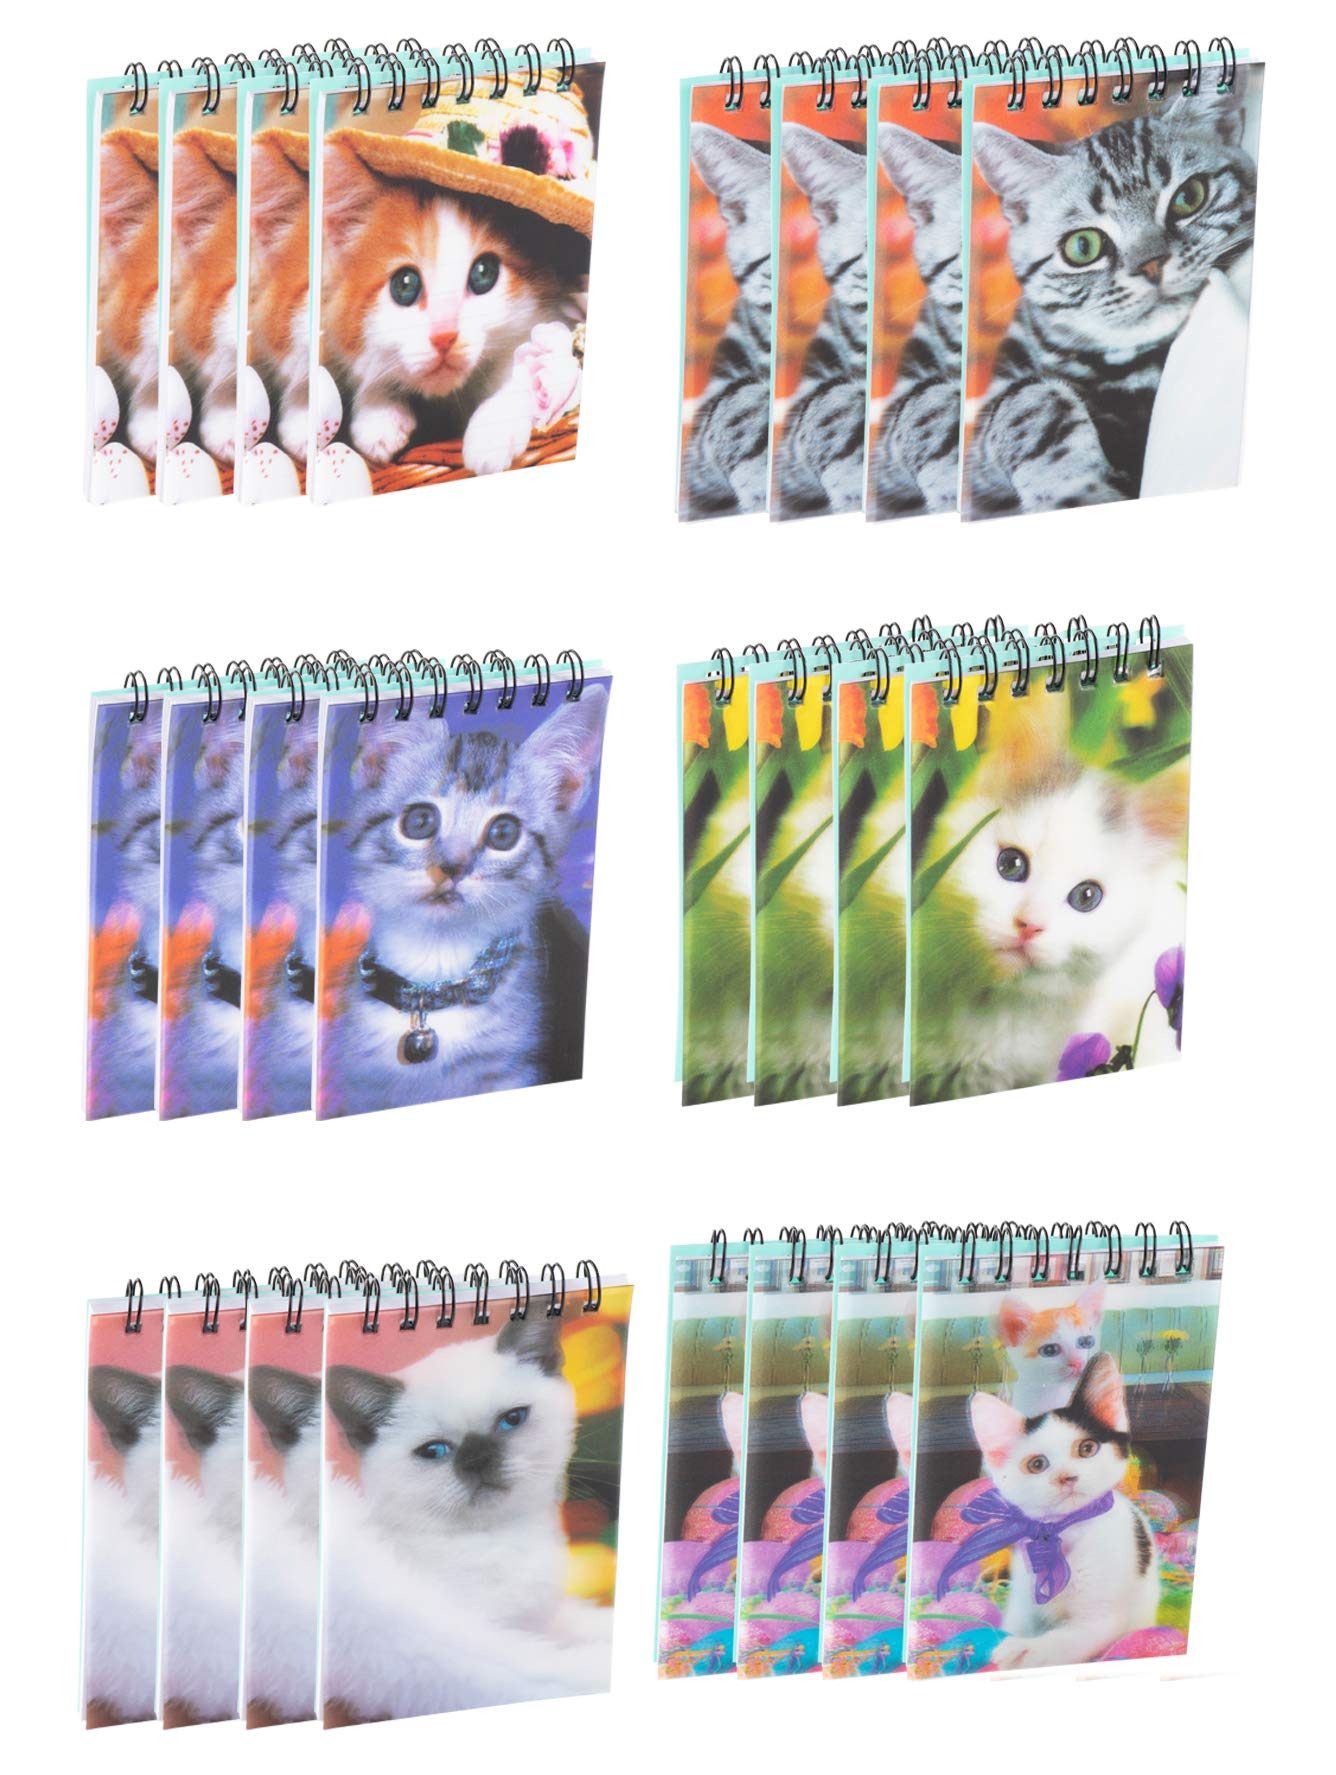 Spiral Notepads - 24-Pack Mini Top Spiral Notebooks for Note Taking, To-do Lists, Kids Party Favors, Lined Paper, 6 Cats 3D Cover Designs, 55 Pages Each, 2.75 x 4.25 Inches by Juvale